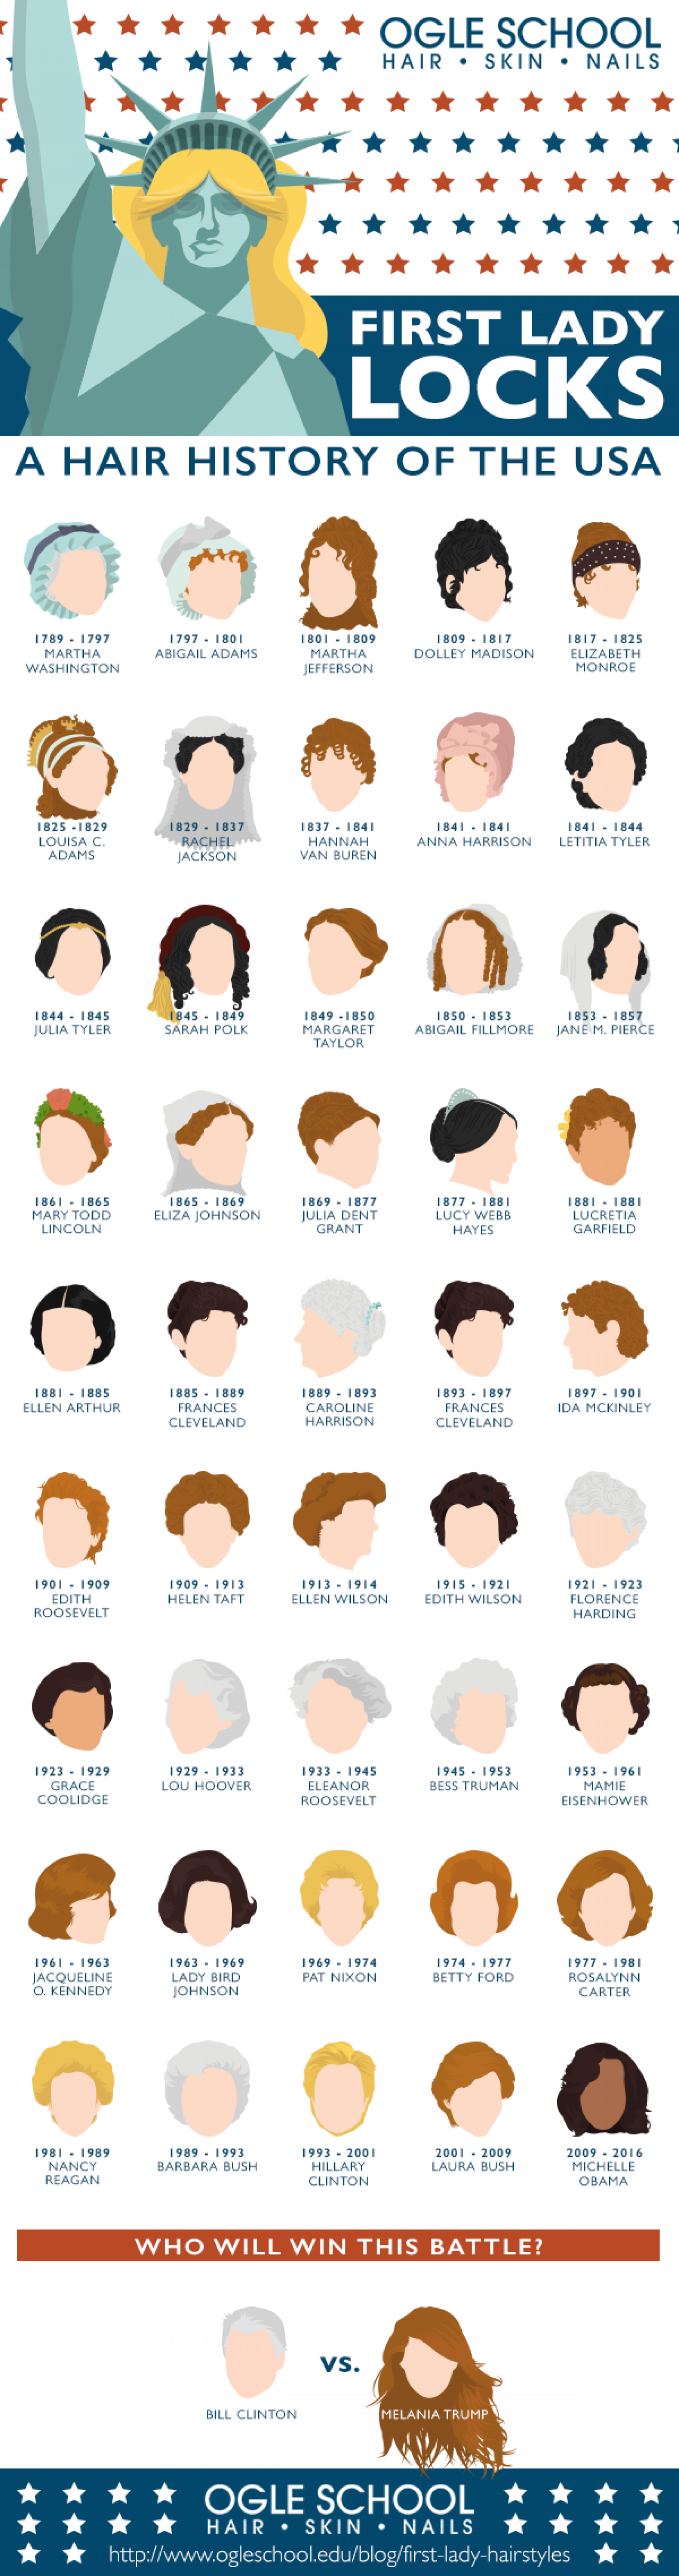 First Lady Locks: A Hair History of the USA Infographic